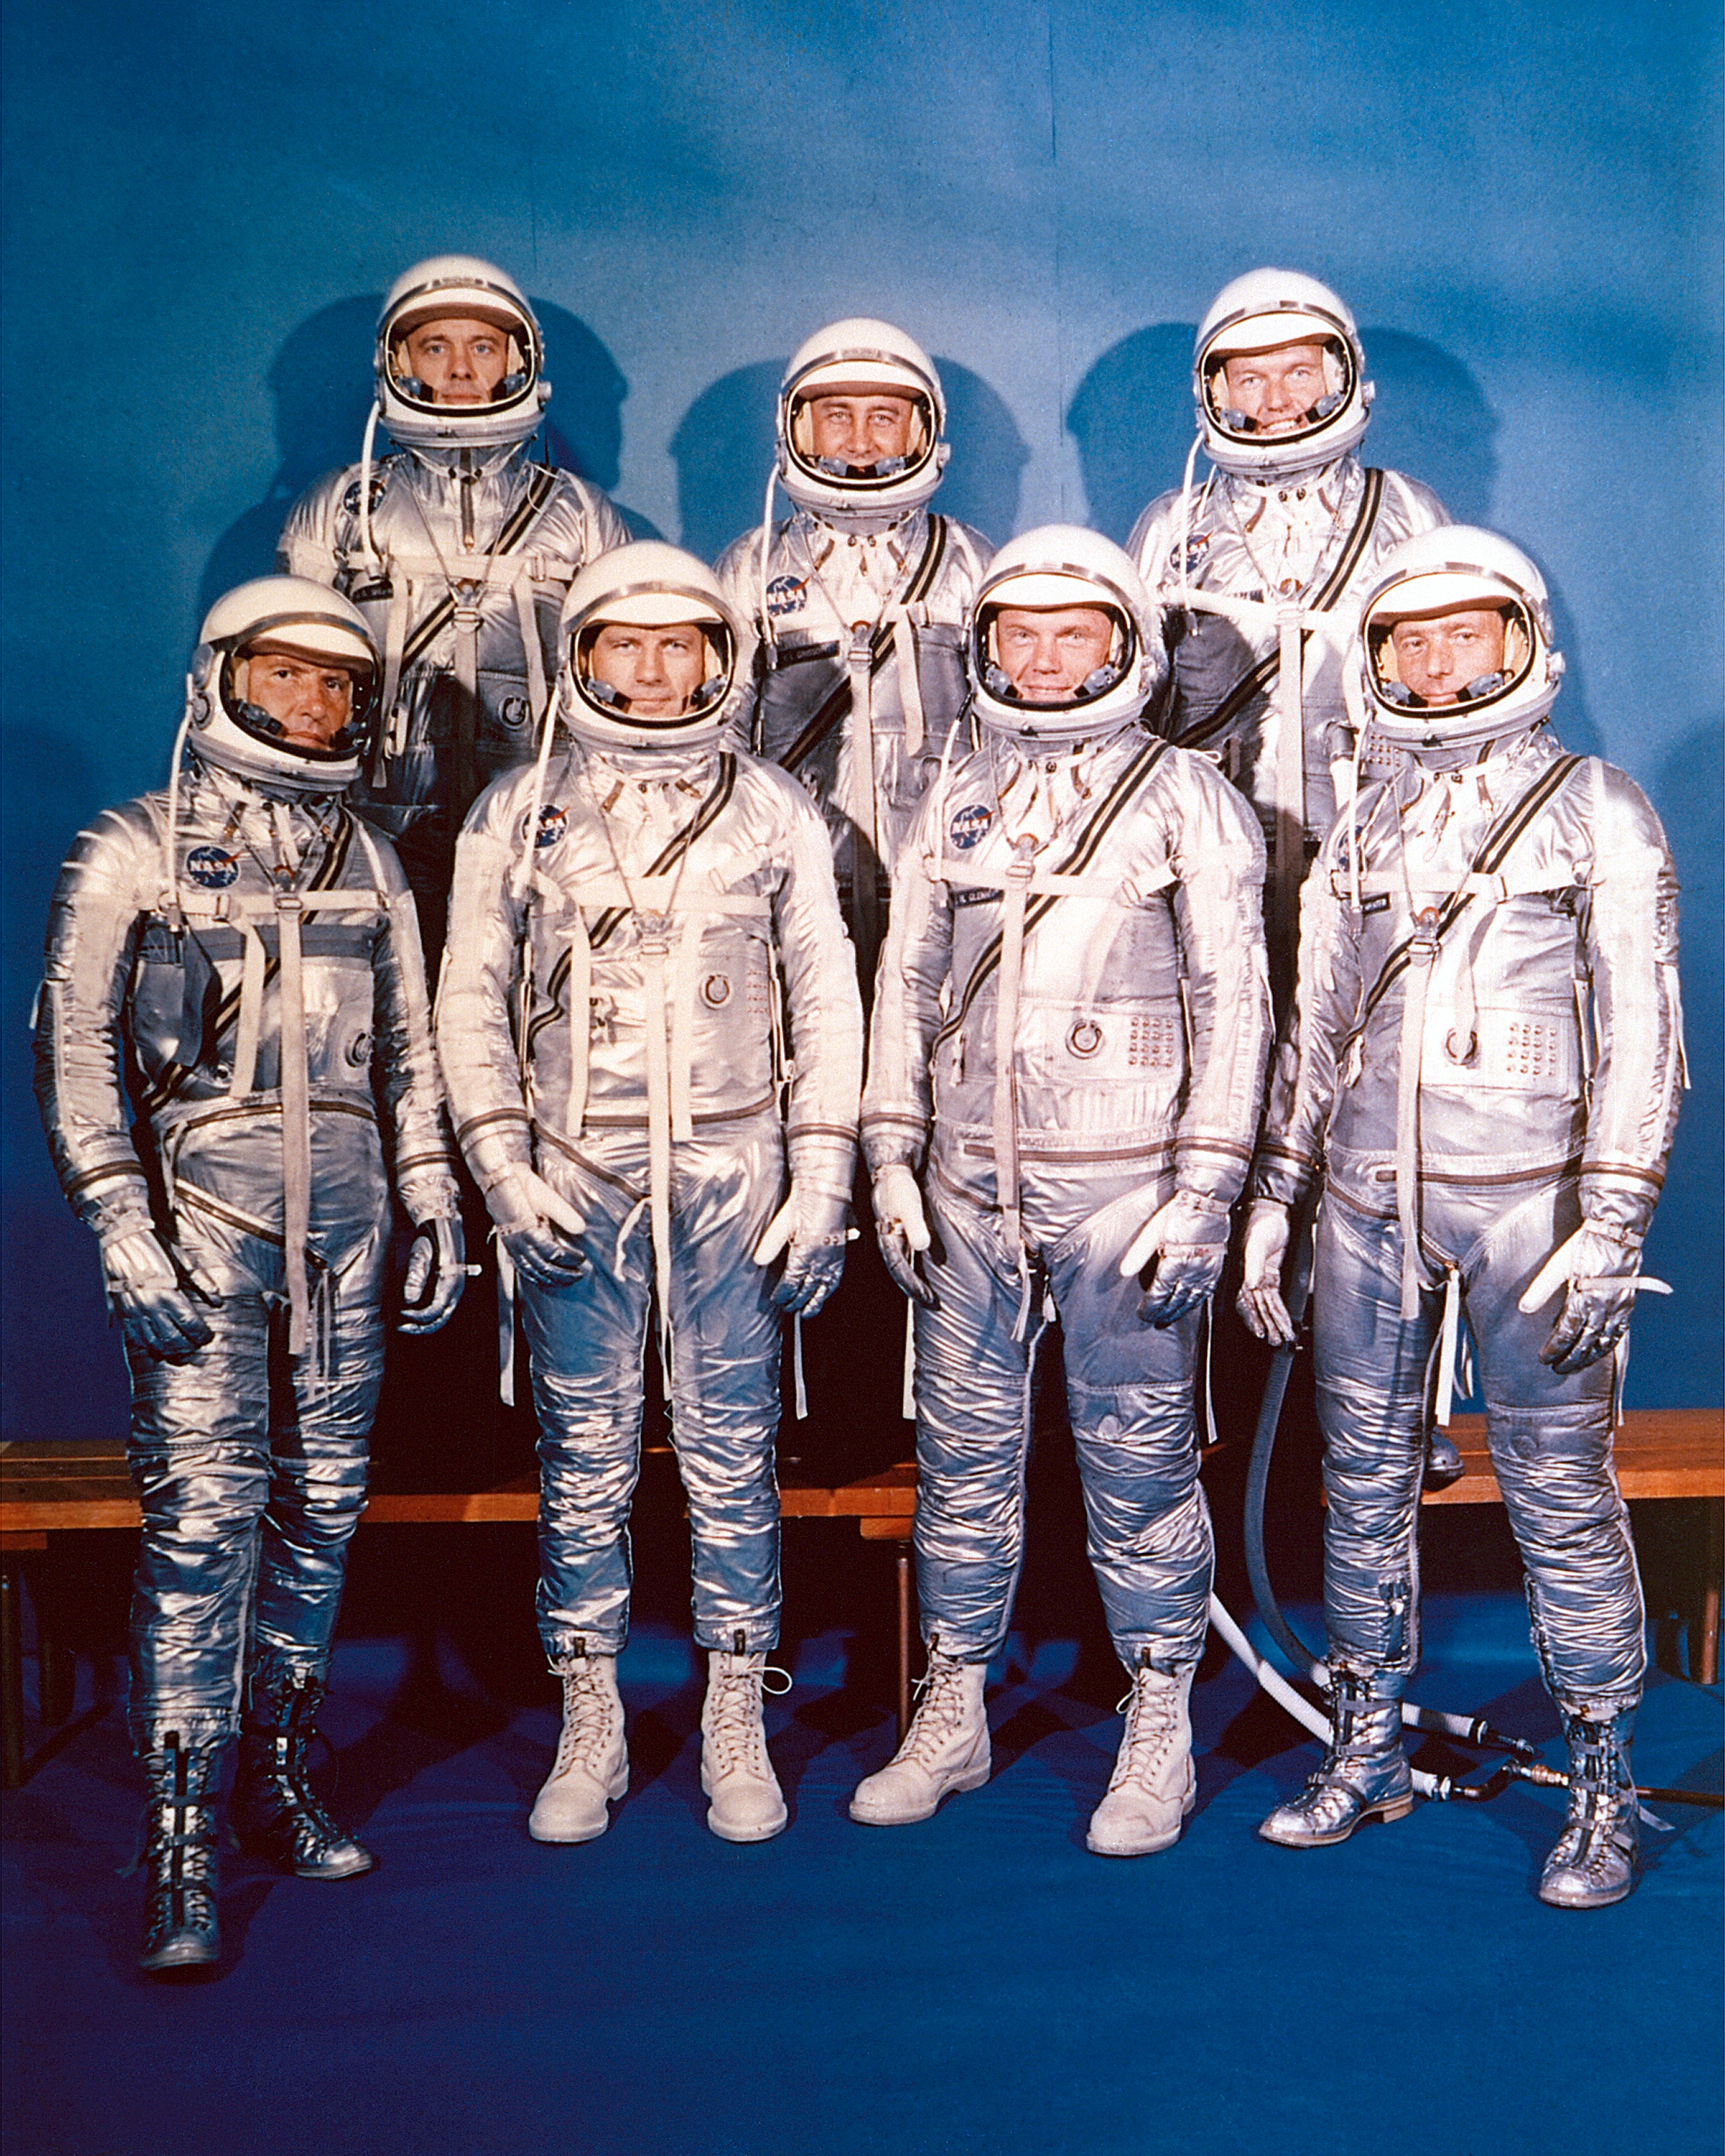 american space program 1961 gallery - photo #40